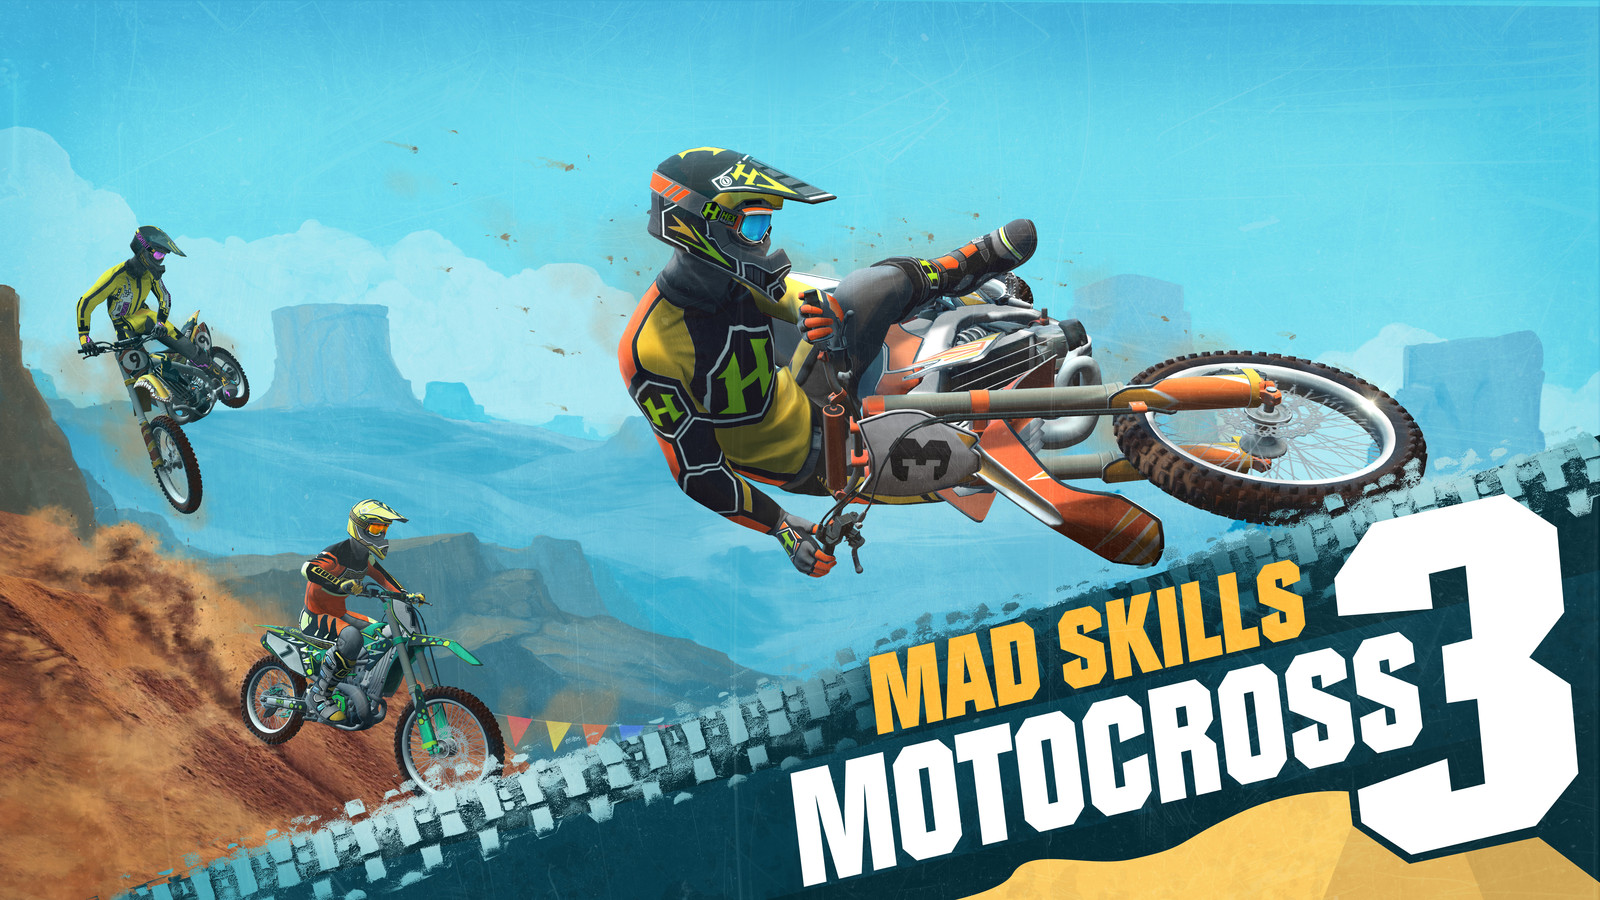 Mad Skills Motocross 3 is Out Now!